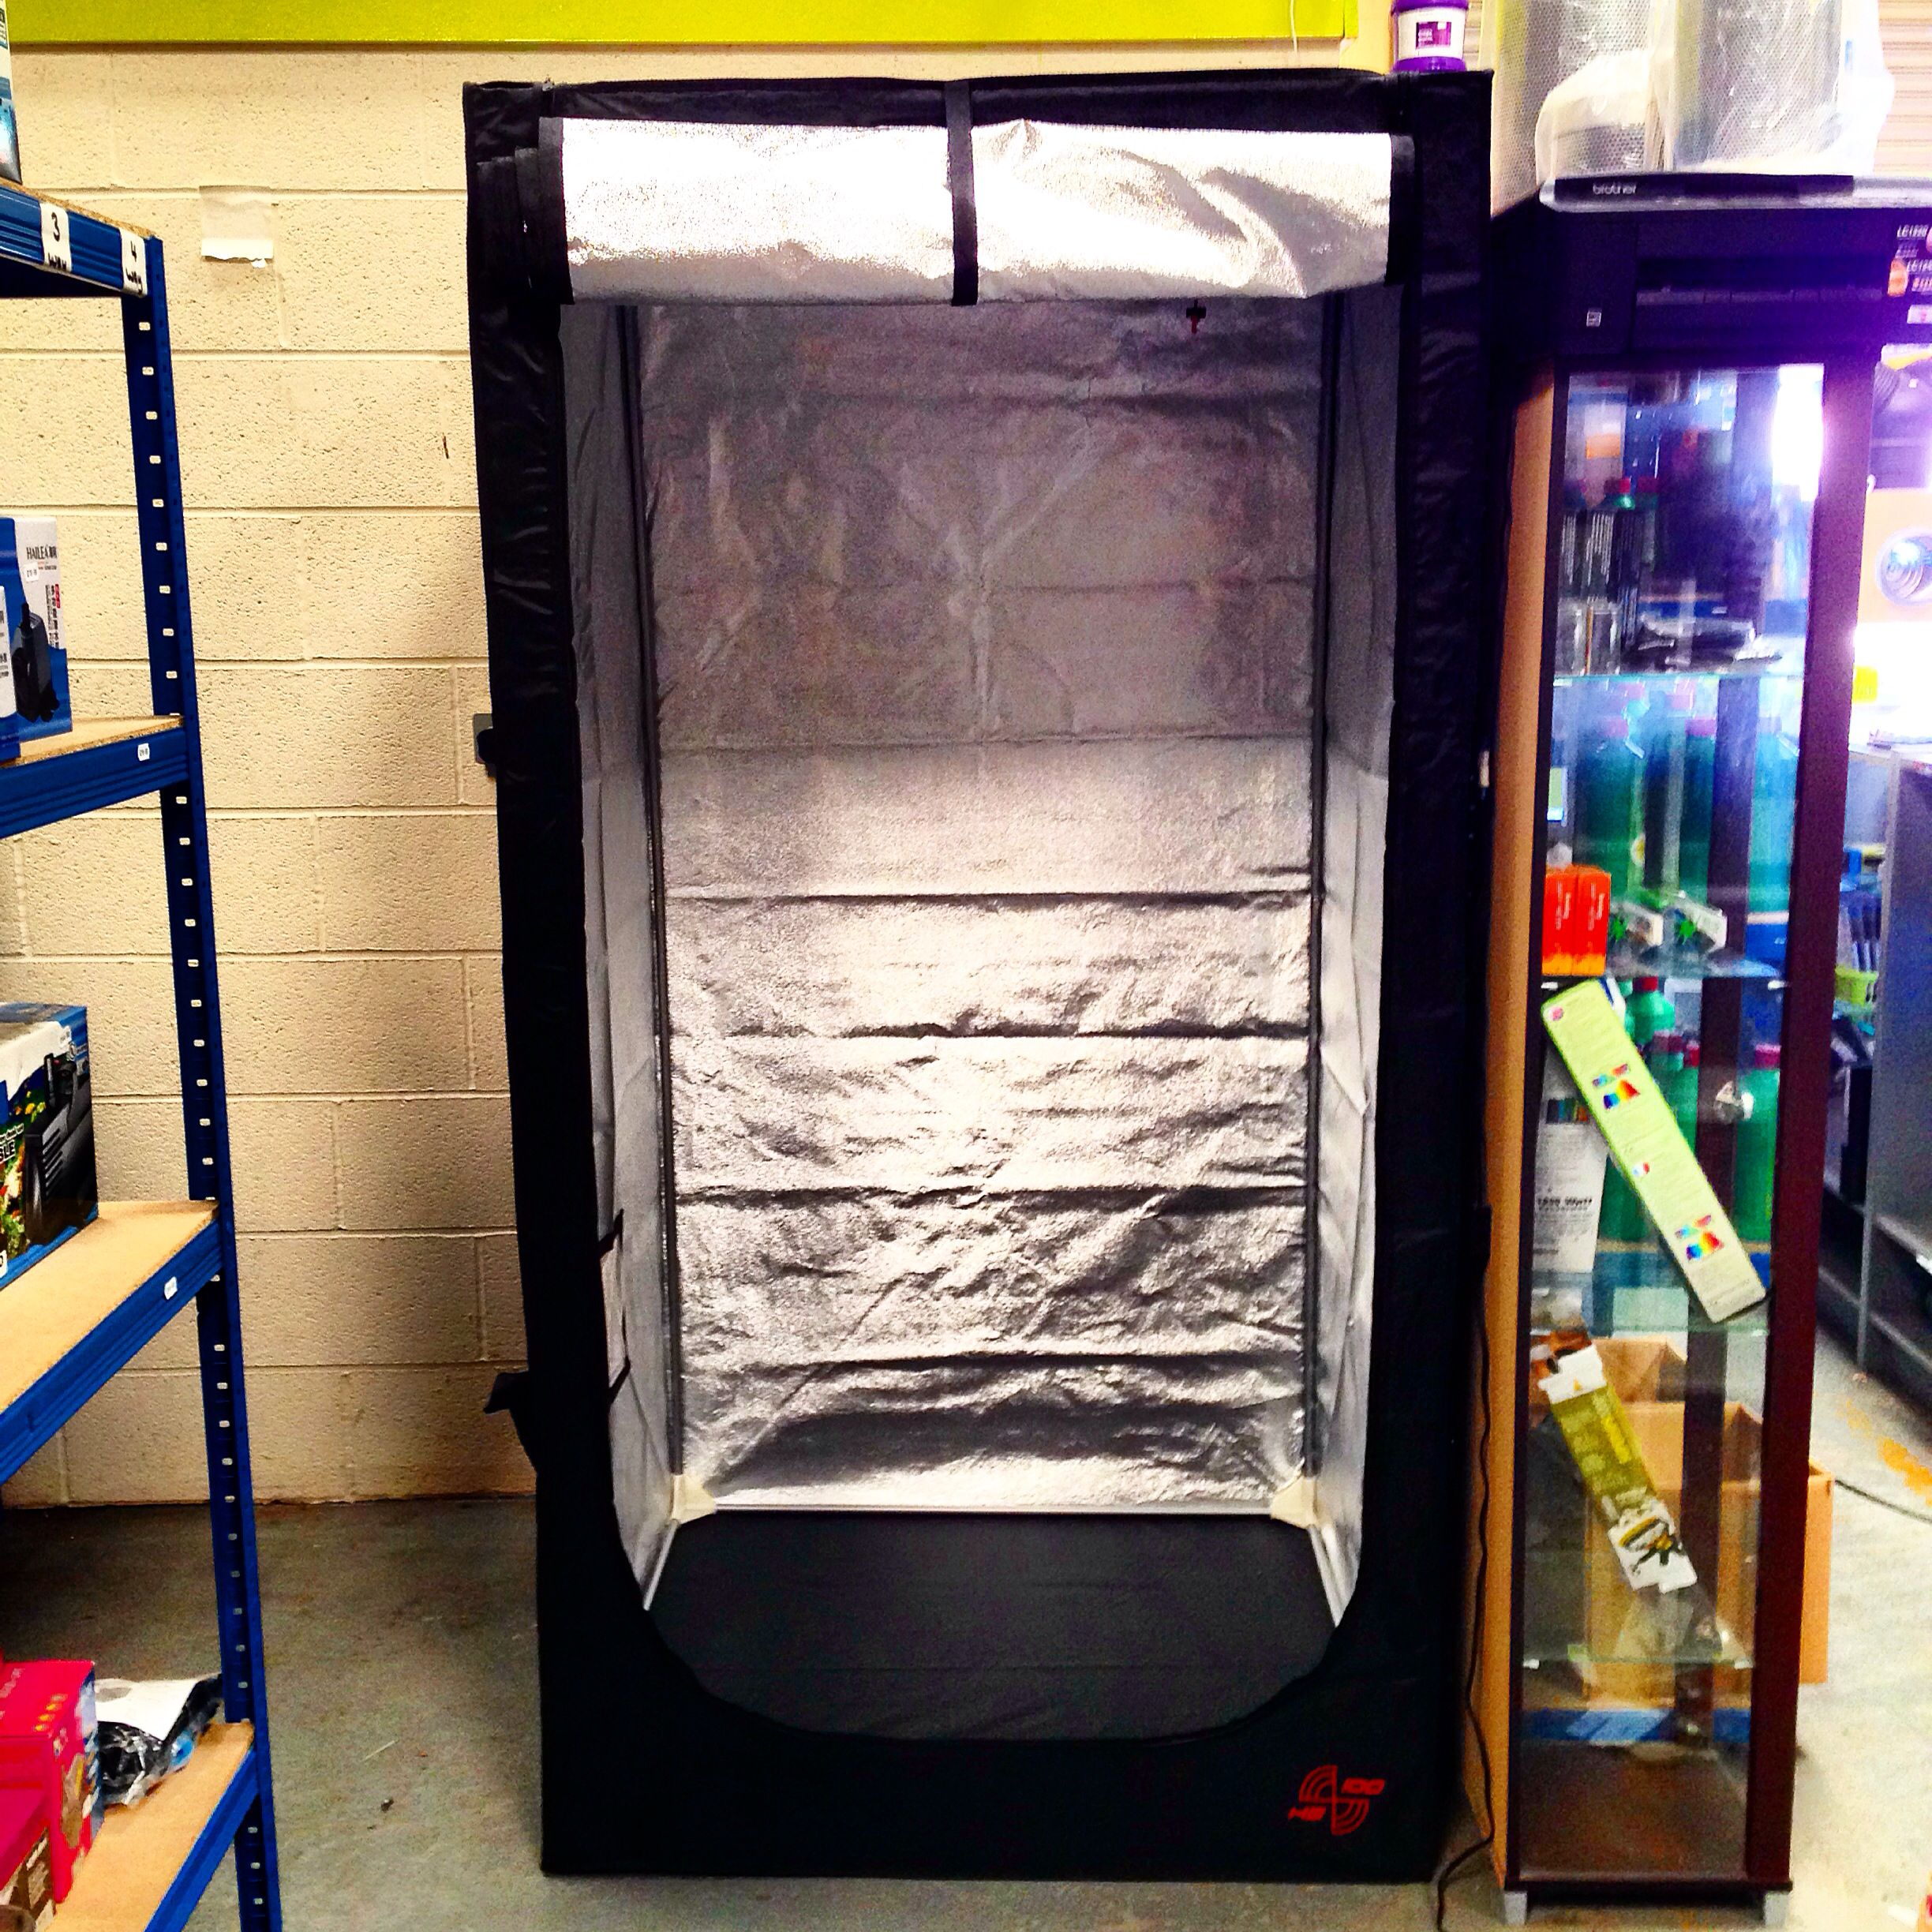 Hydro shoot value grow tents from only £44.99 .hg-hydroponics.co & Hydro shoot value grow tents from only £44.99 www.hg-hydroponics ...